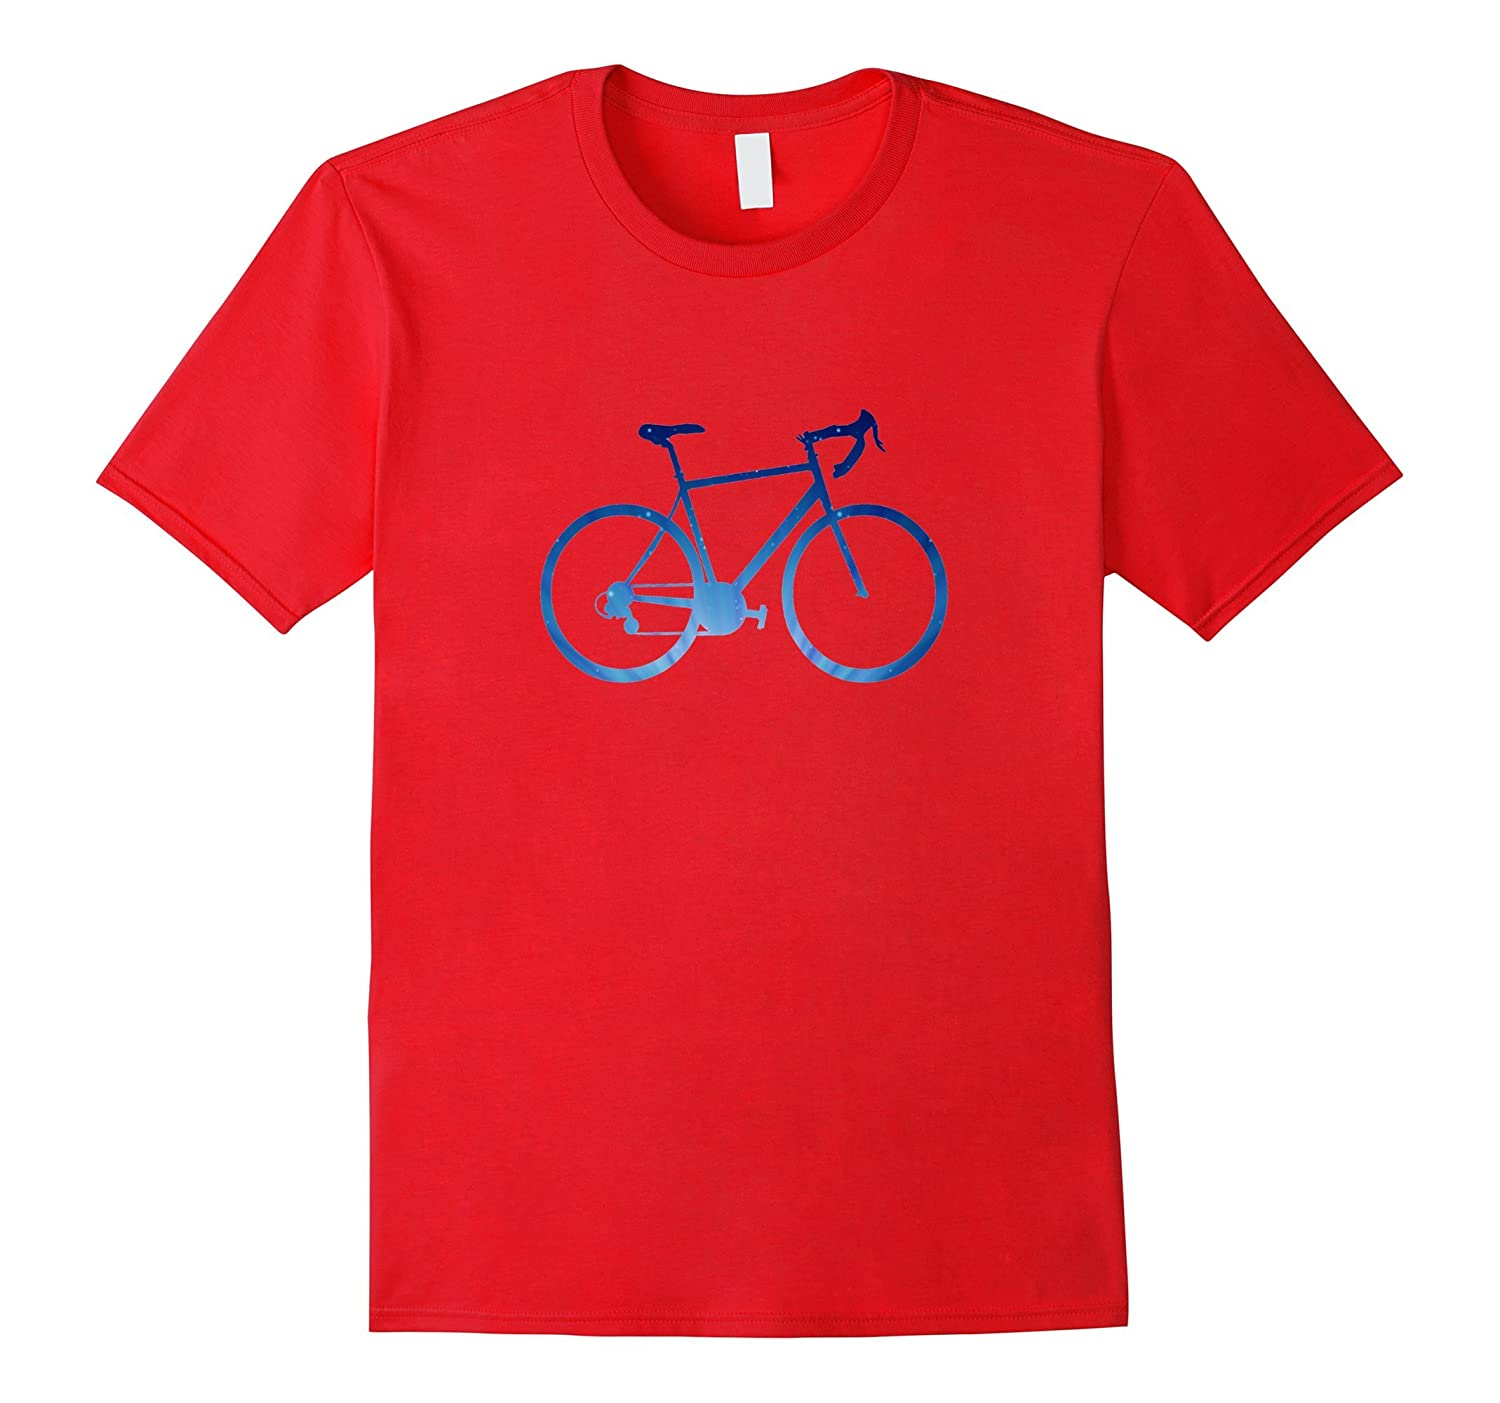 Bicycle Cycling T-Shirt Bike Cyclists Cool Graphic Shirt-TD